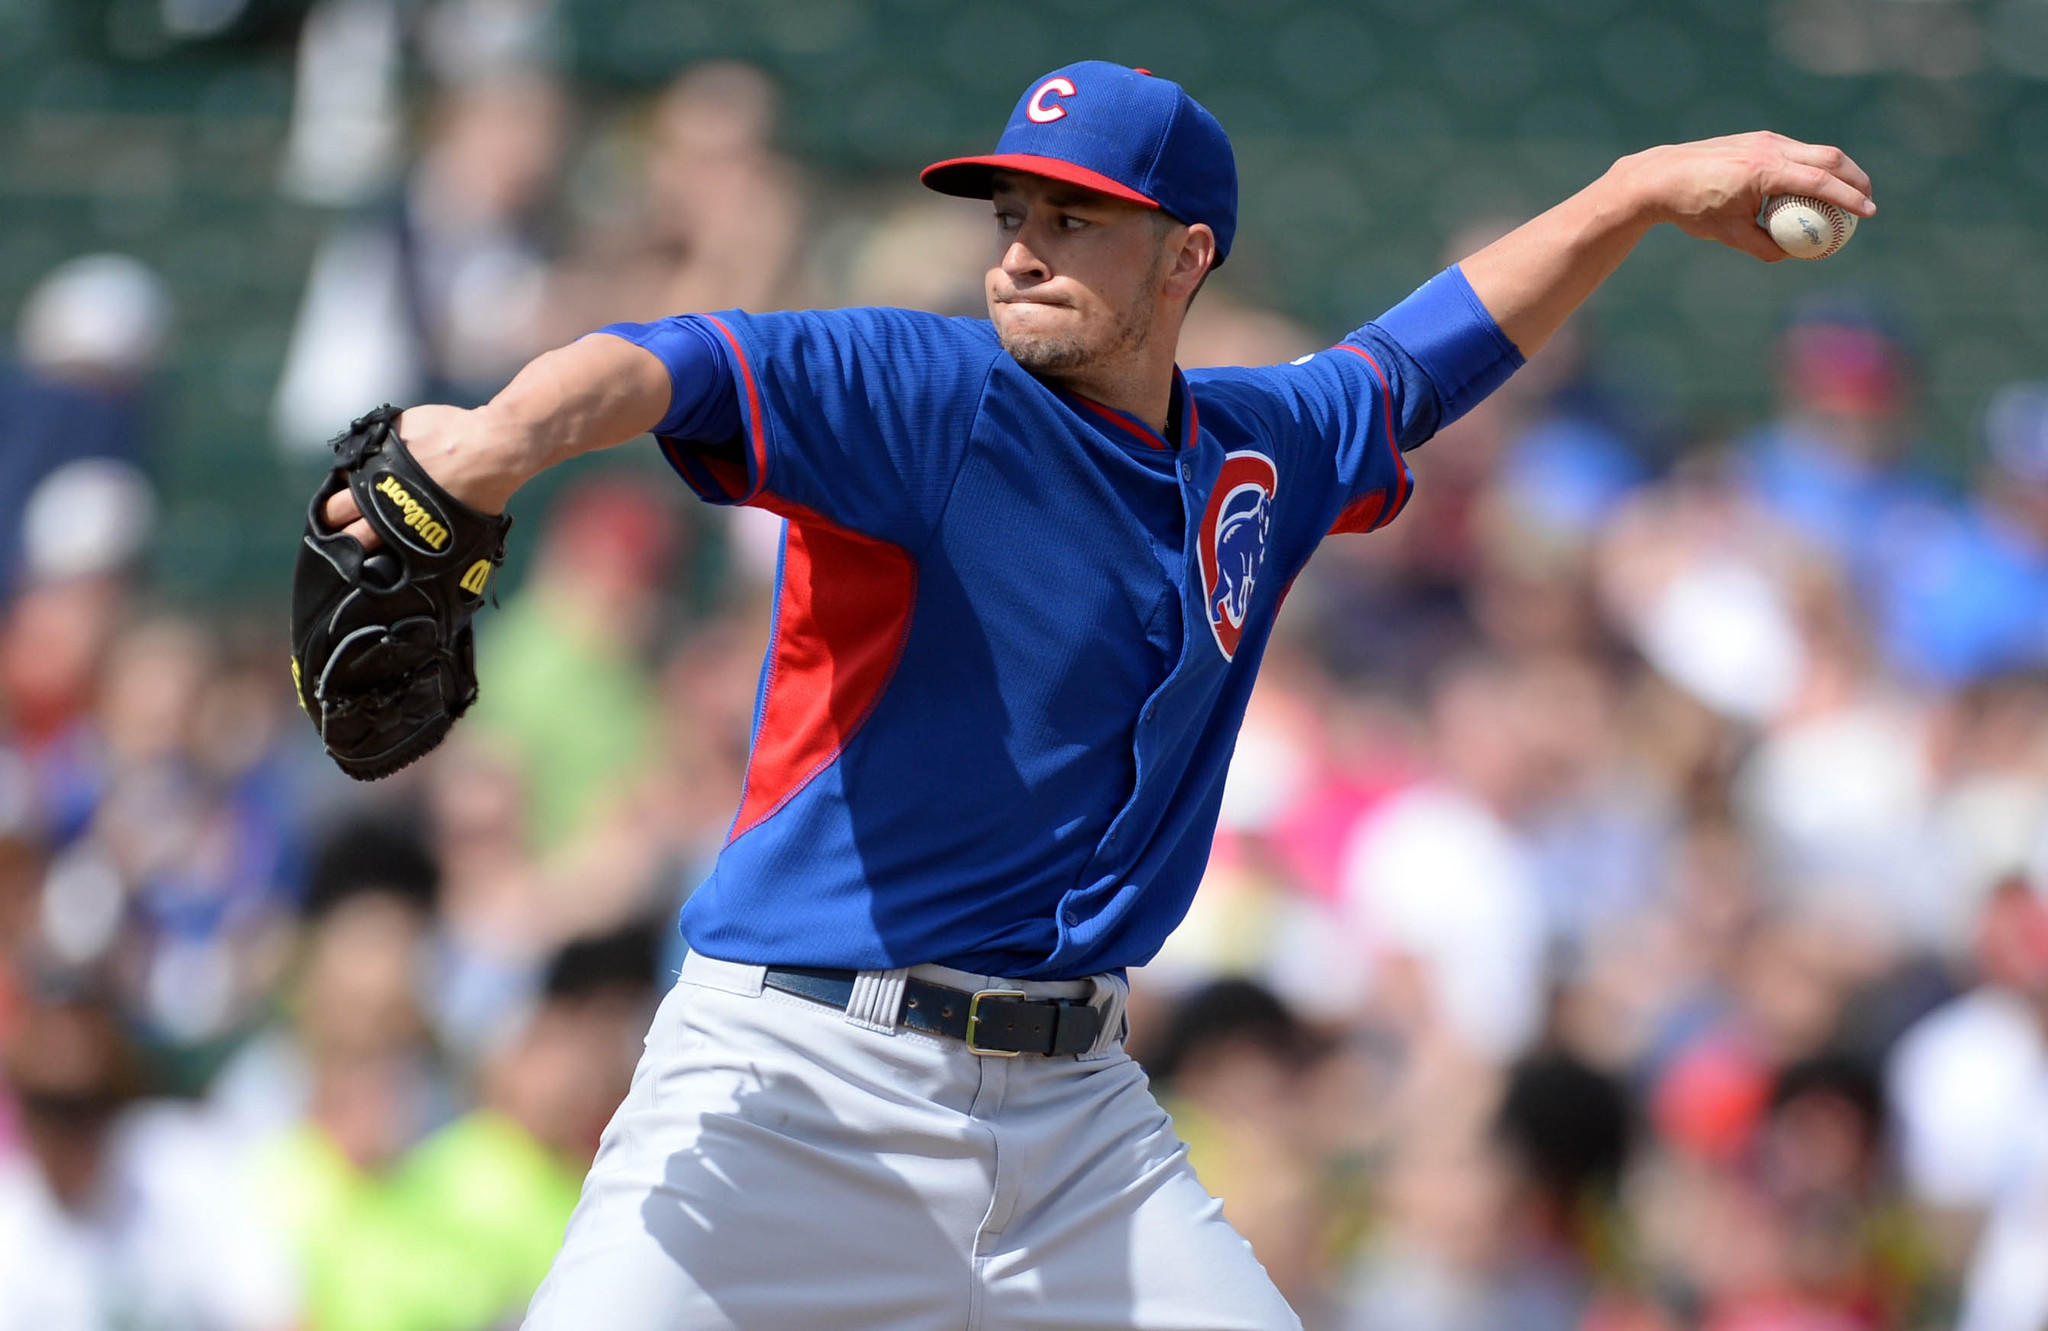 Chicago Cubs starting pitcher Chris Rusin during Friday's game.